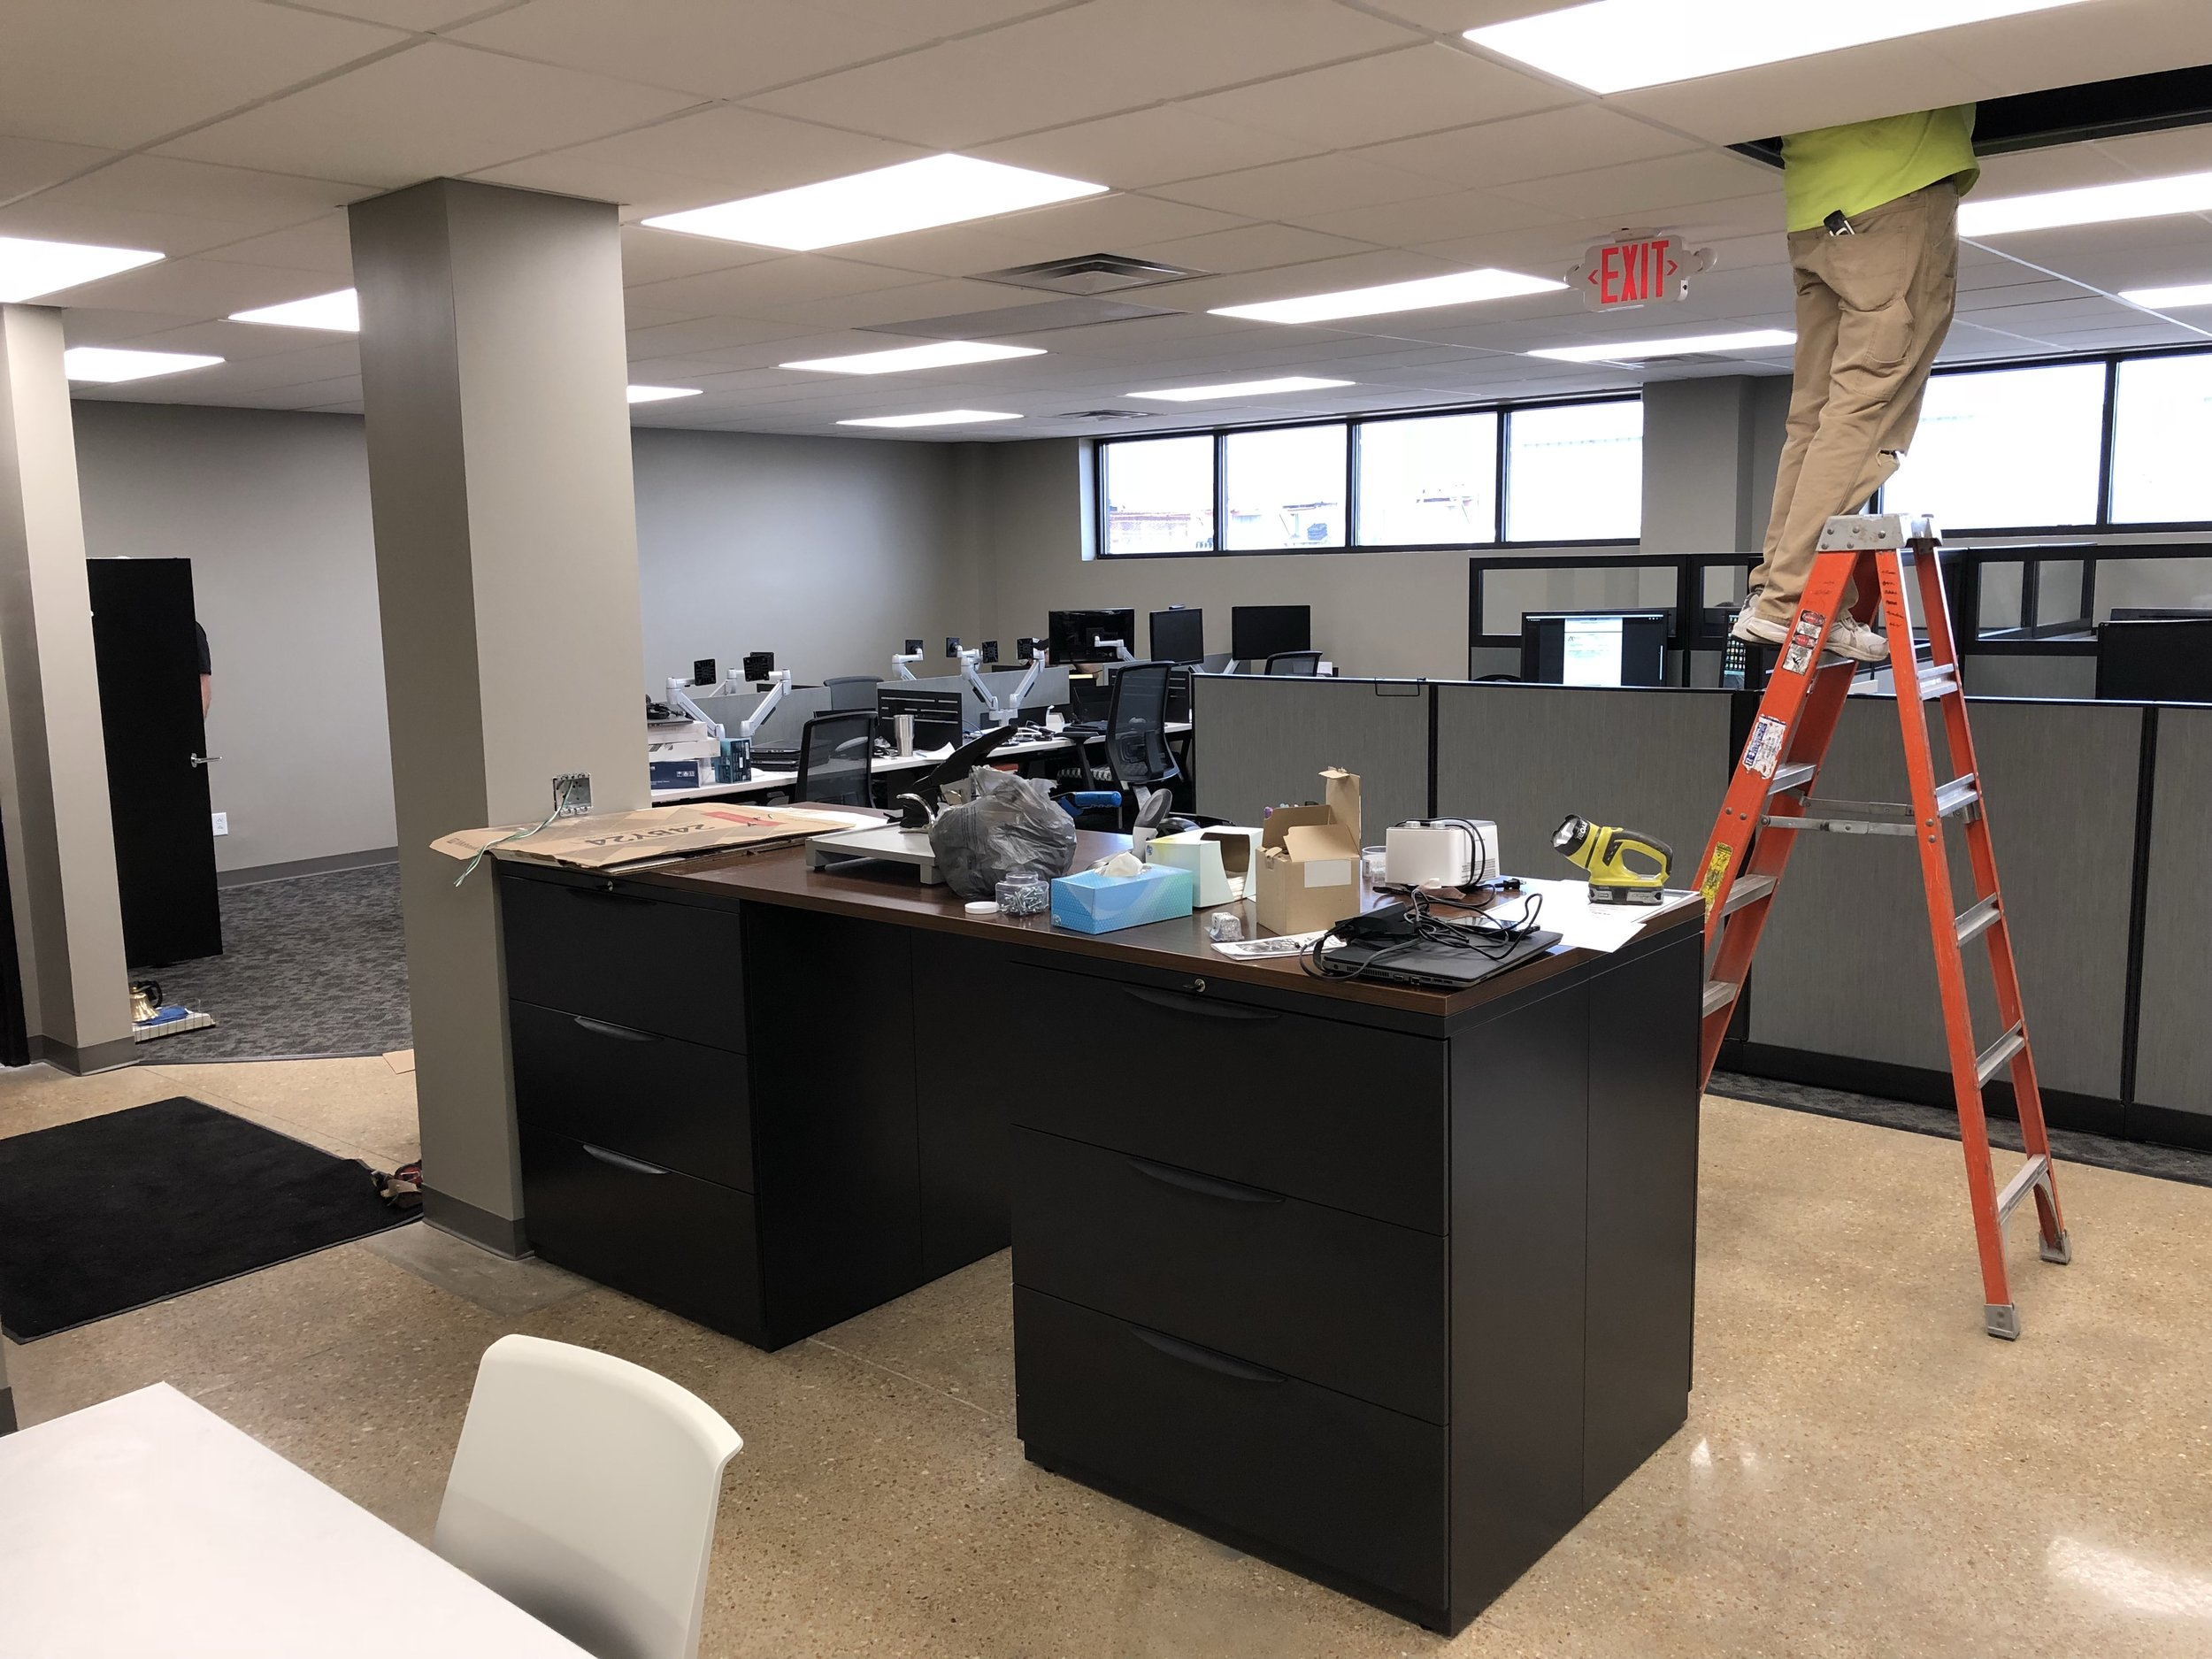 Finishing the final touches on the newly renovated St. Louis office